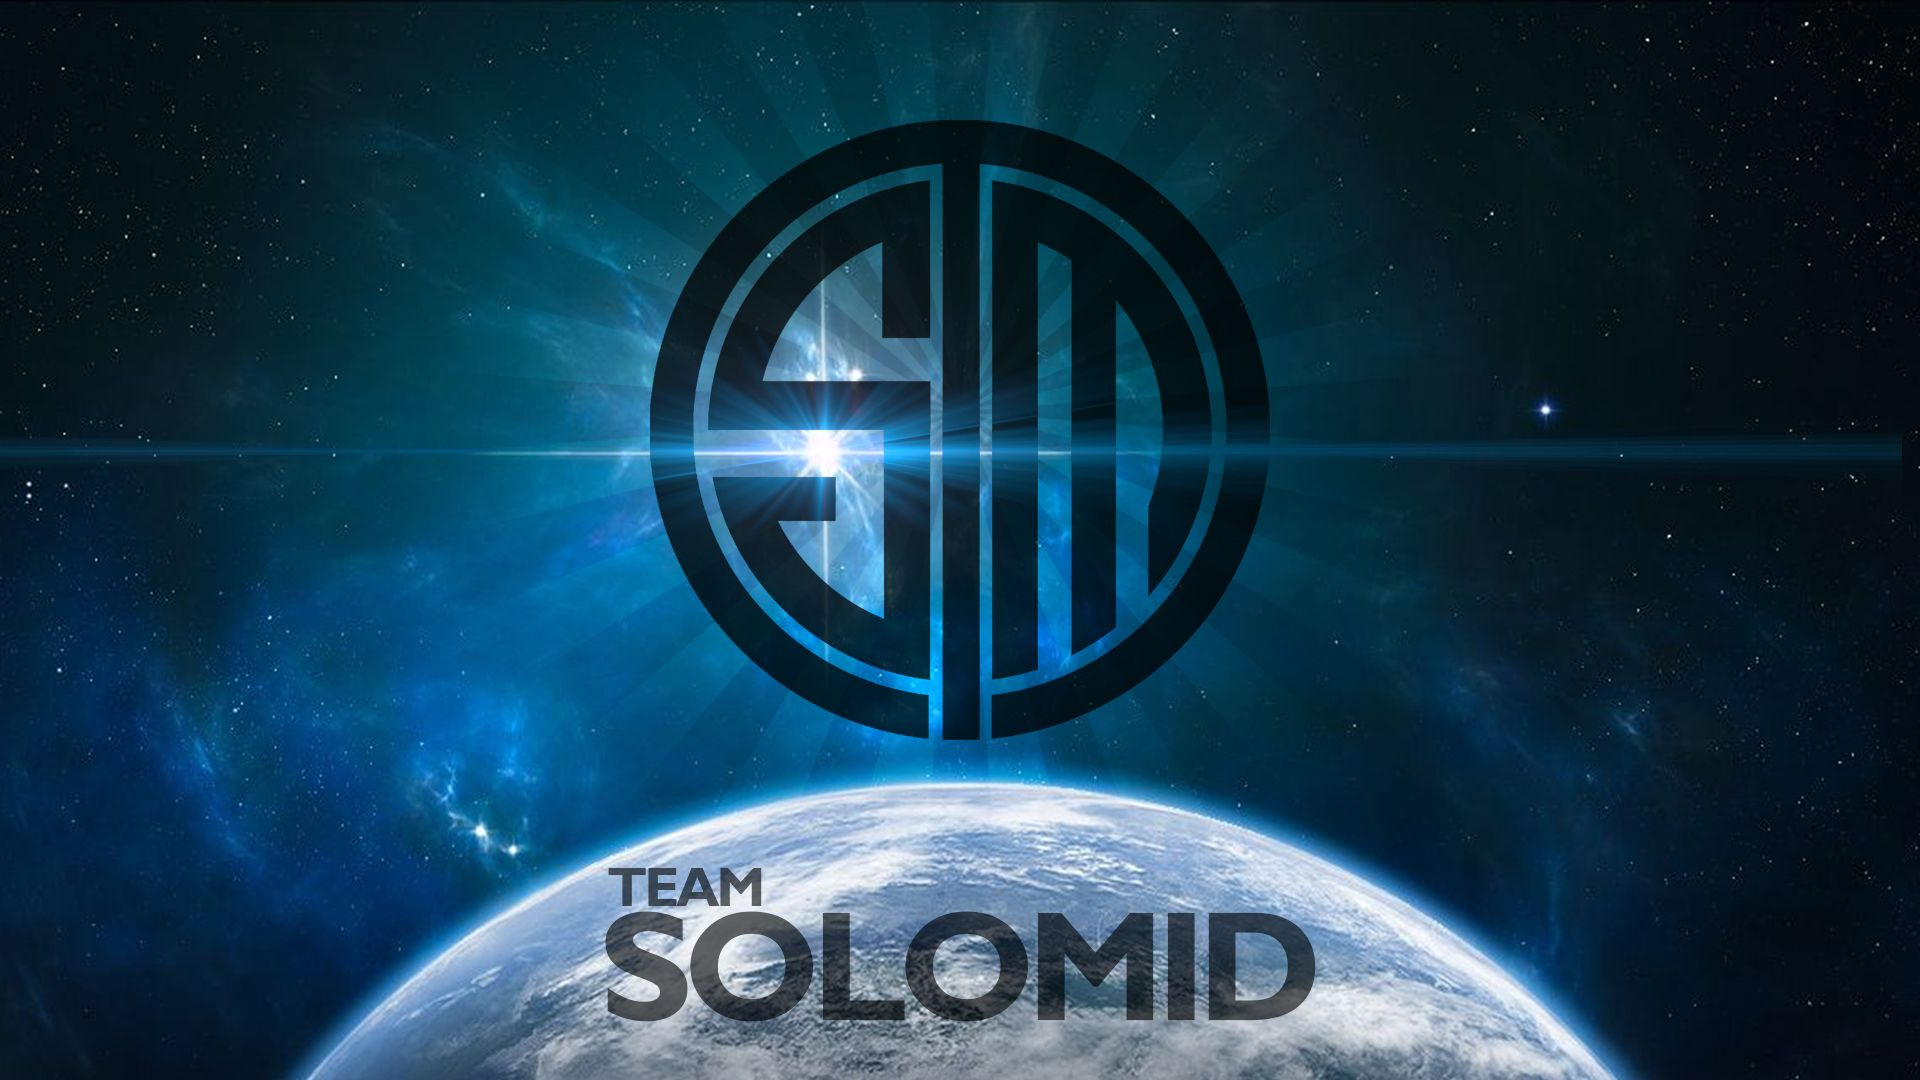 Team Solo Mid Space Wallpaper